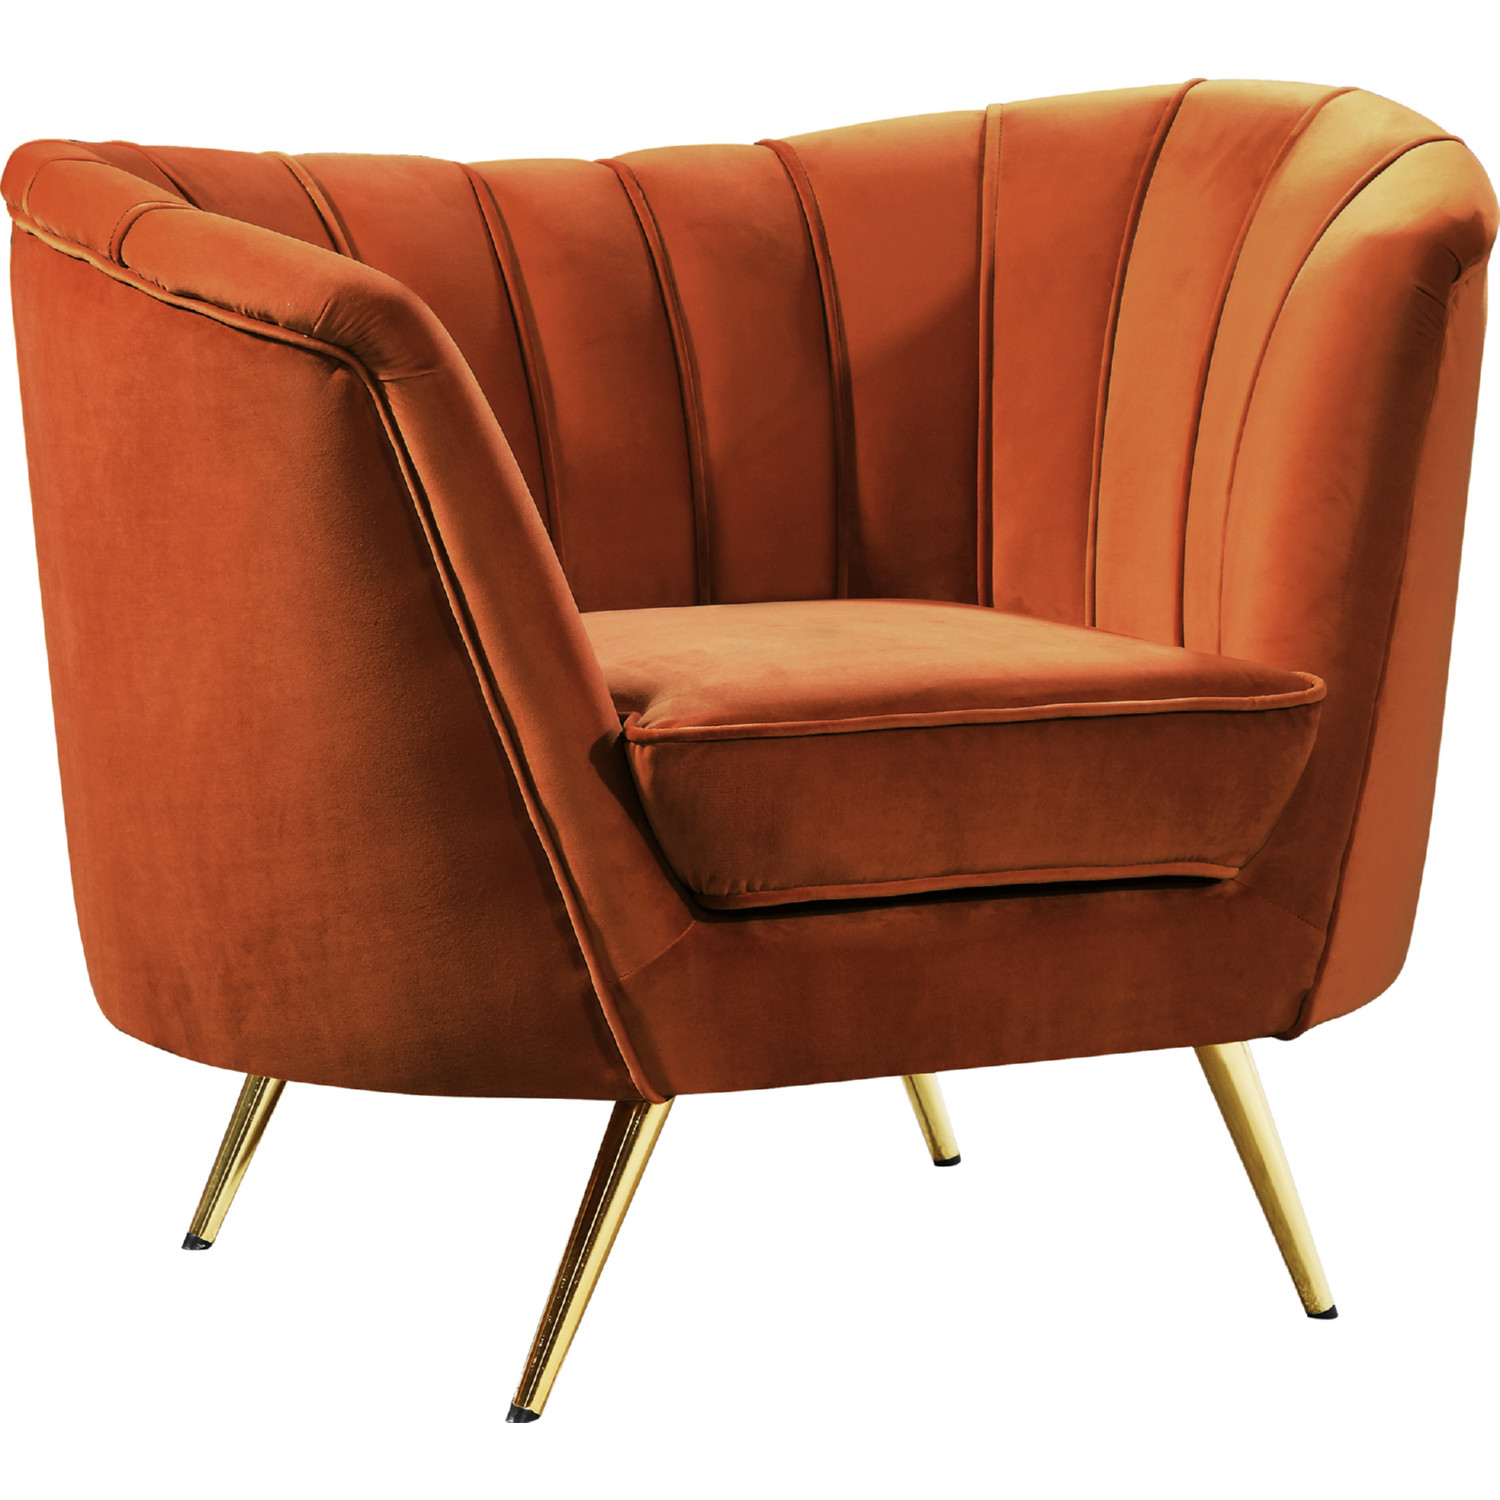 Tremendous Margo Accent Chair In Cognac Velvet On Gold Stainless Legs By Meridian Furniture Caraccident5 Cool Chair Designs And Ideas Caraccident5Info